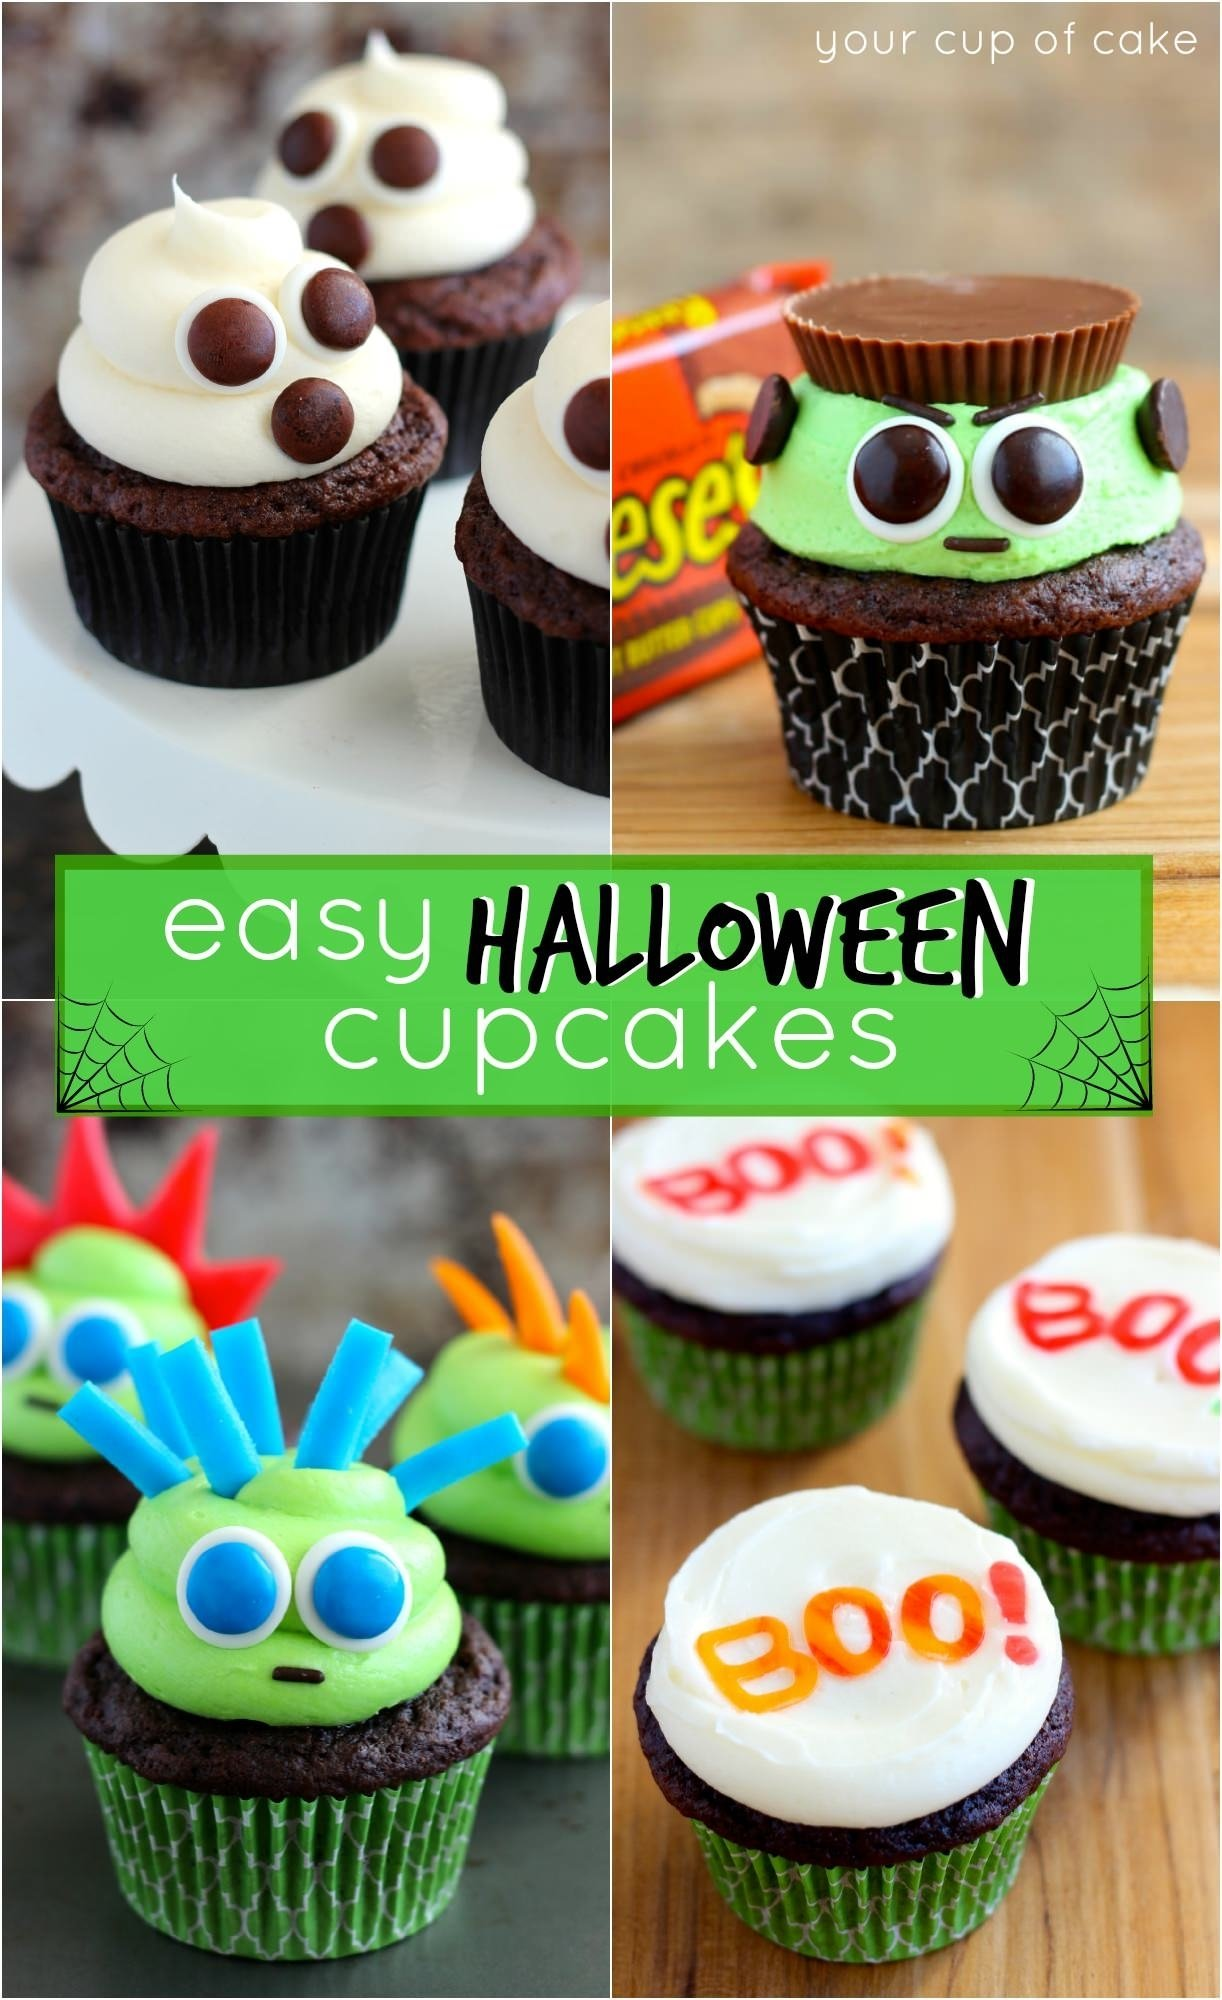 10 Beautiful Easy Halloween Cake Decorating Ideas pumpkin patch cupcakes your cup of cake 1 2020